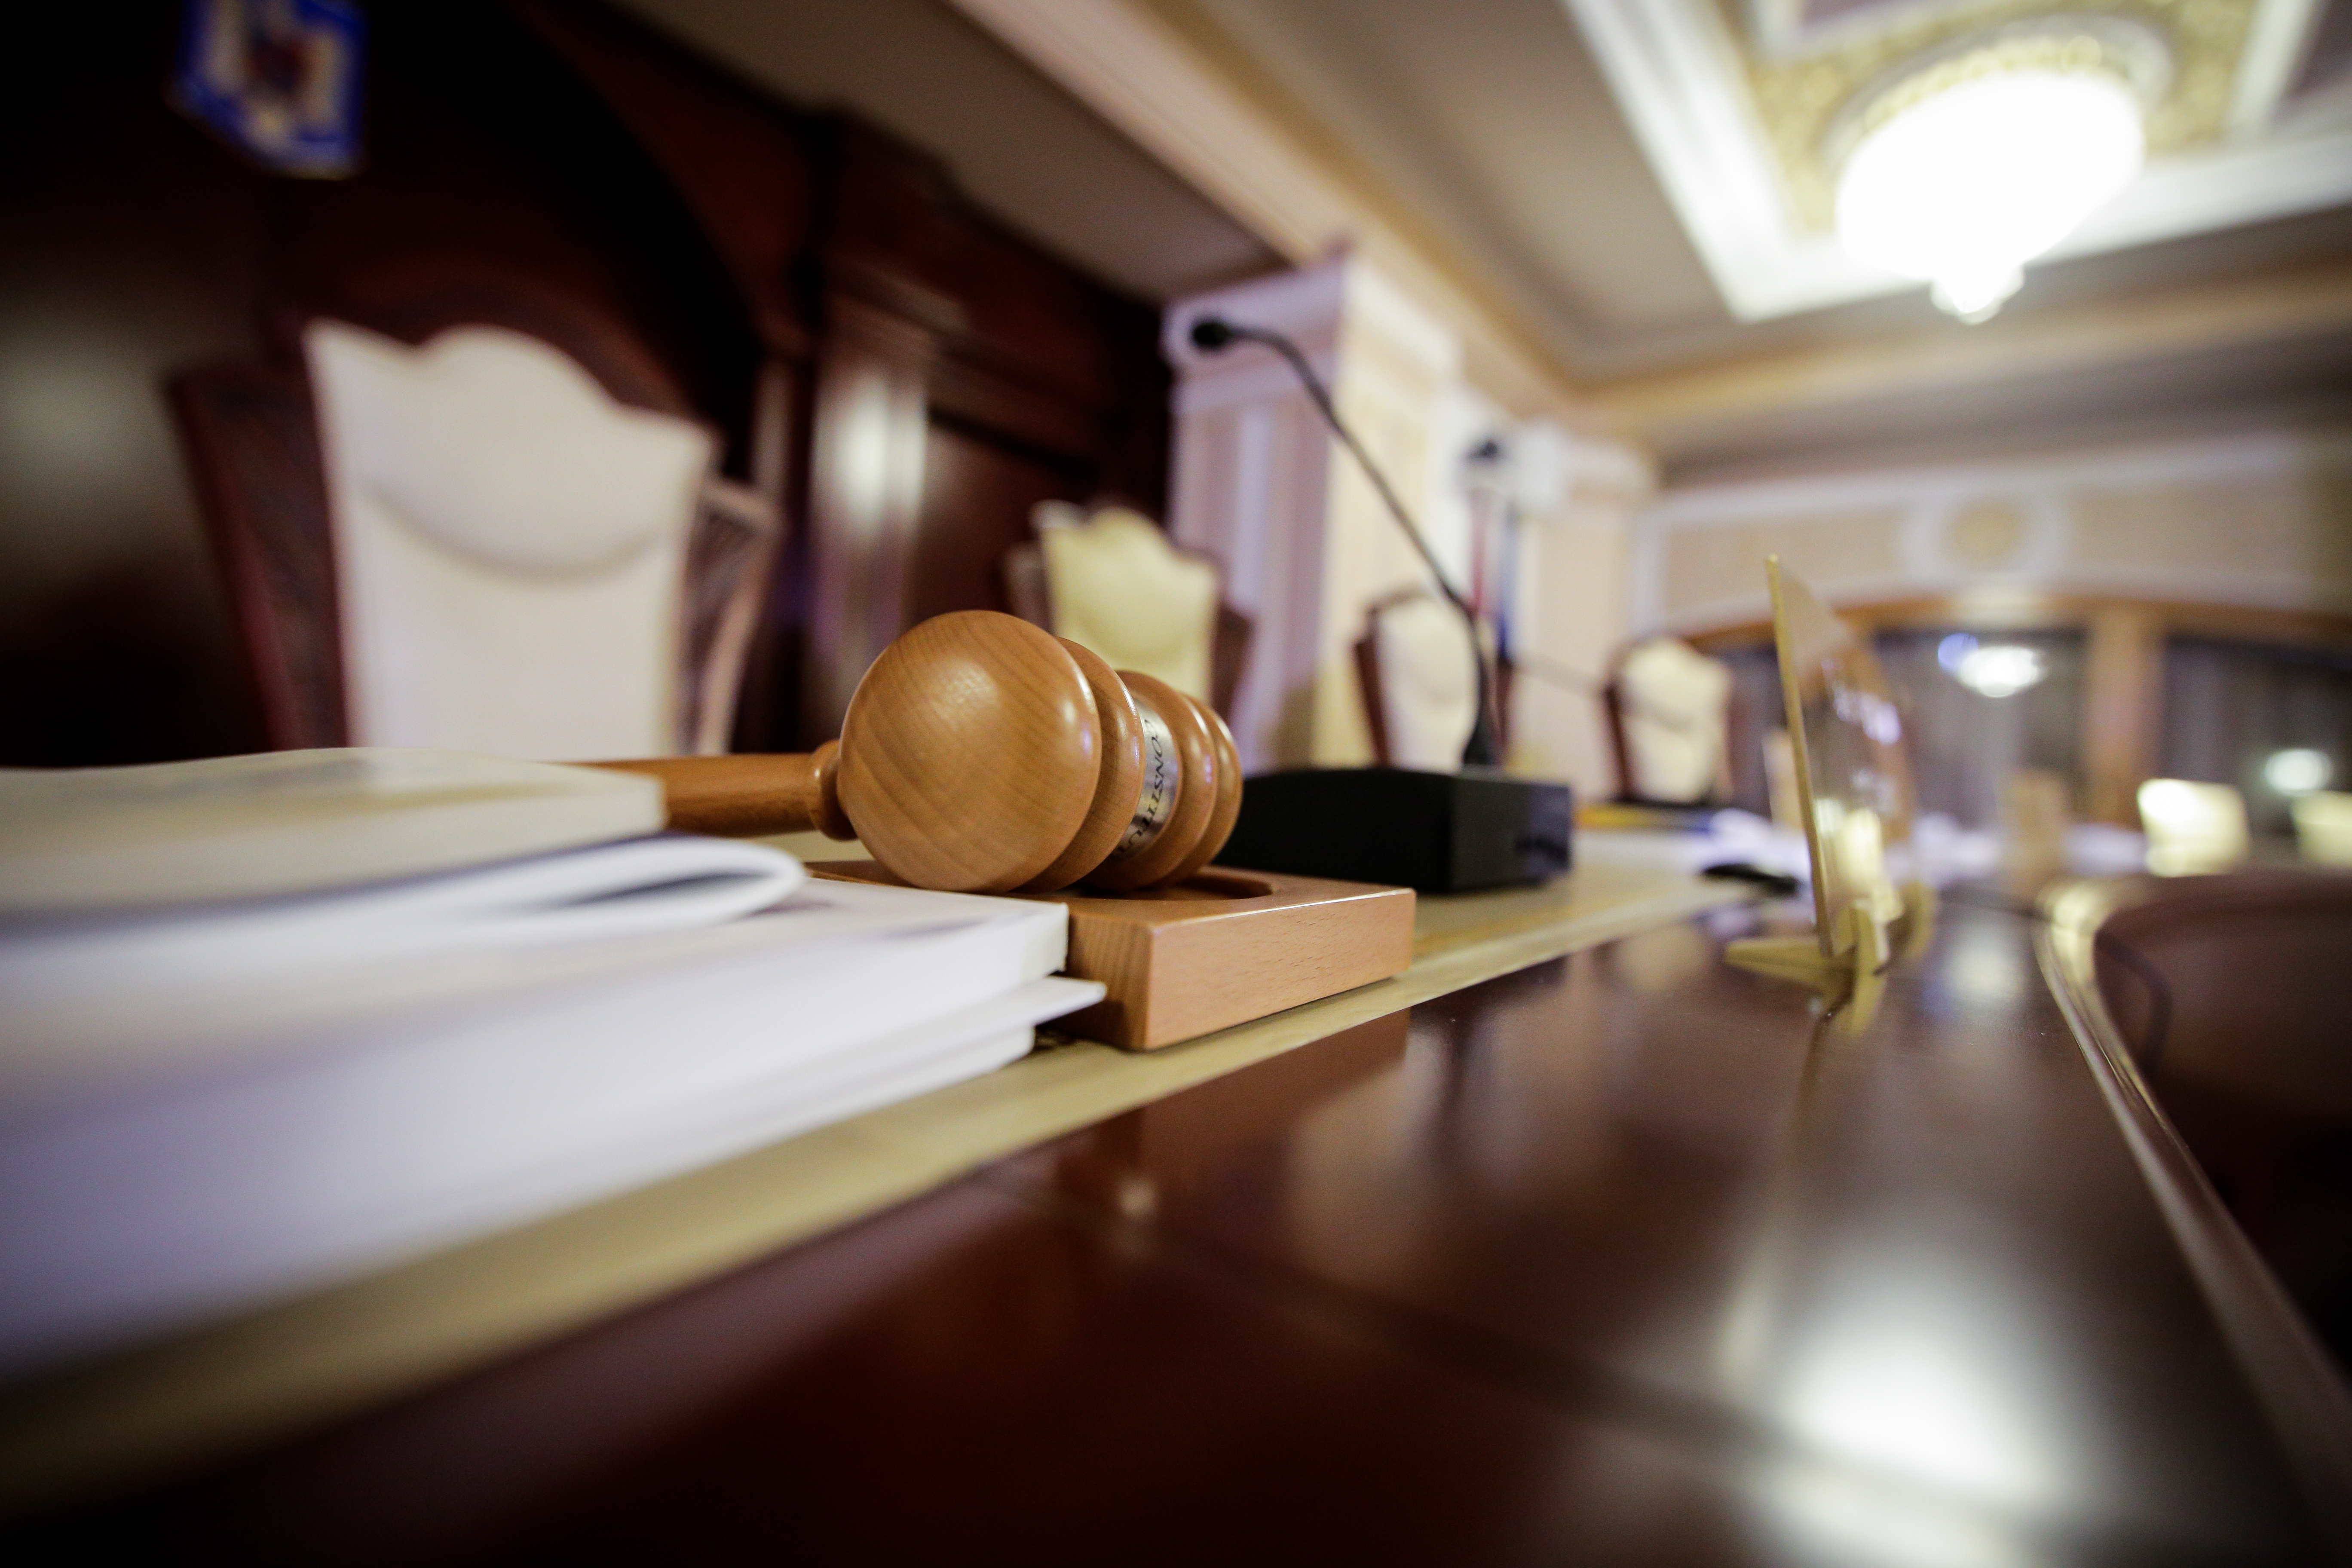 Gavel in a court room